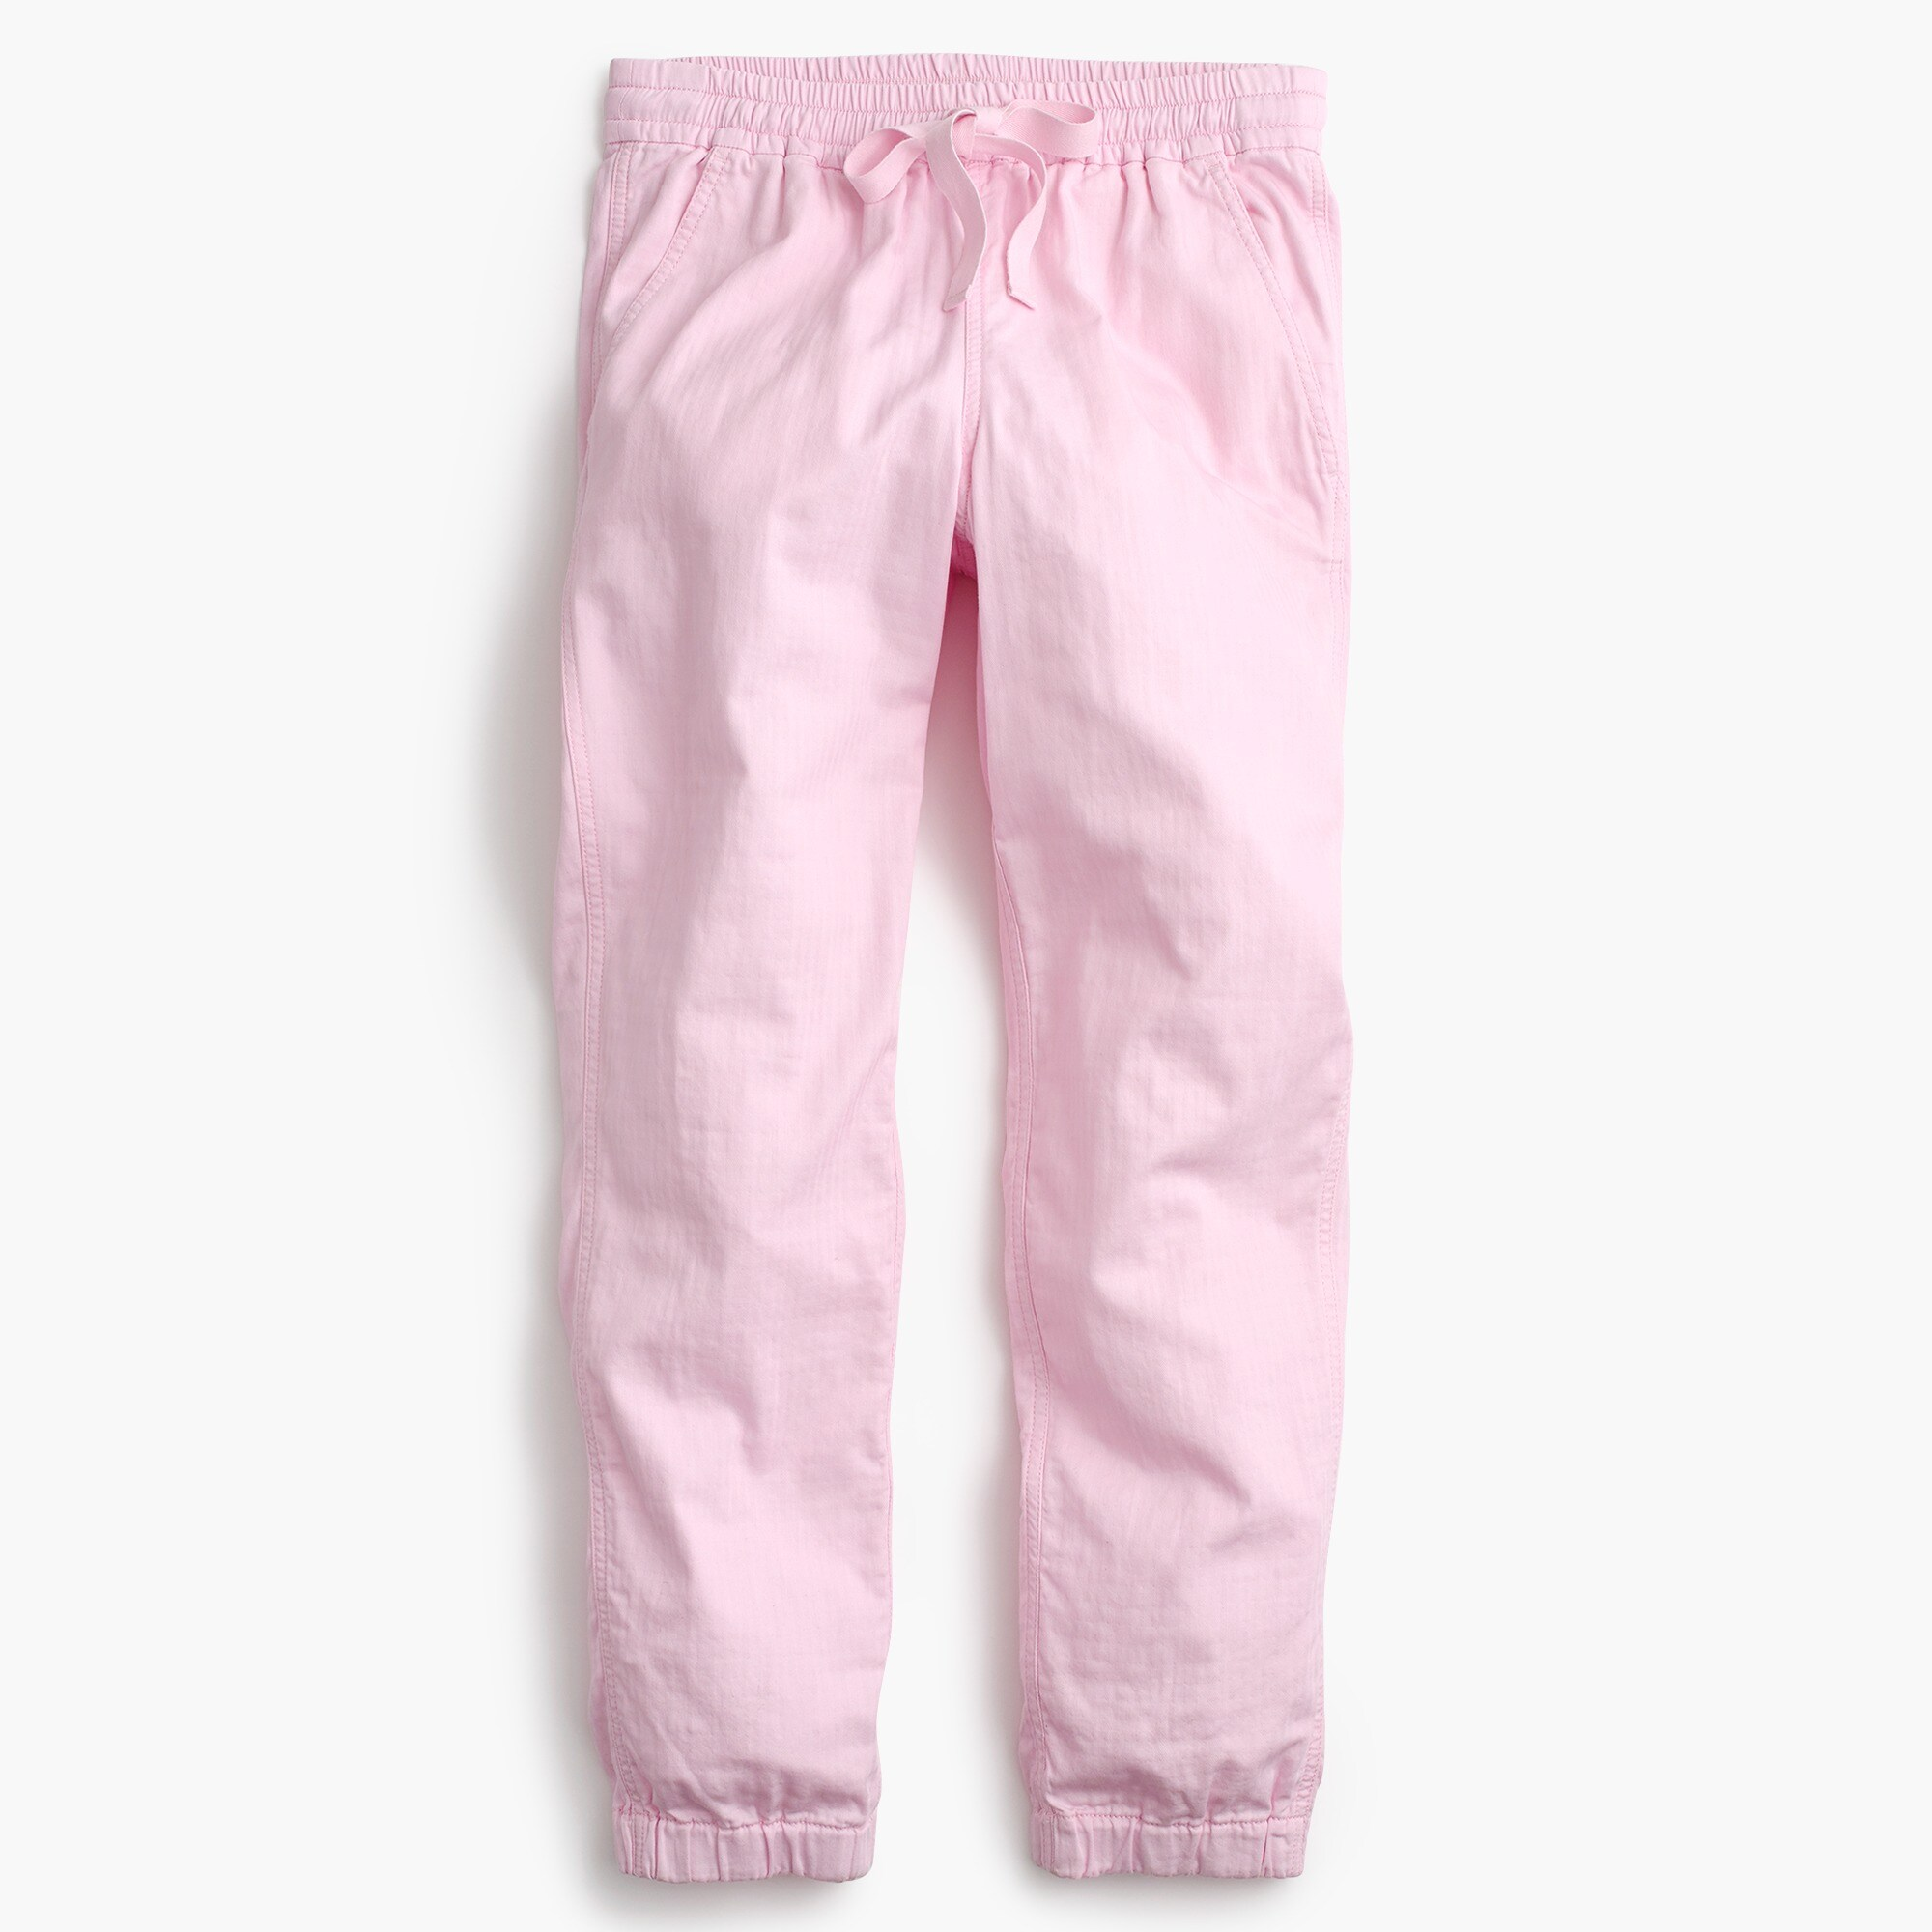 Petite Point Sur seaside pant in cotton twill